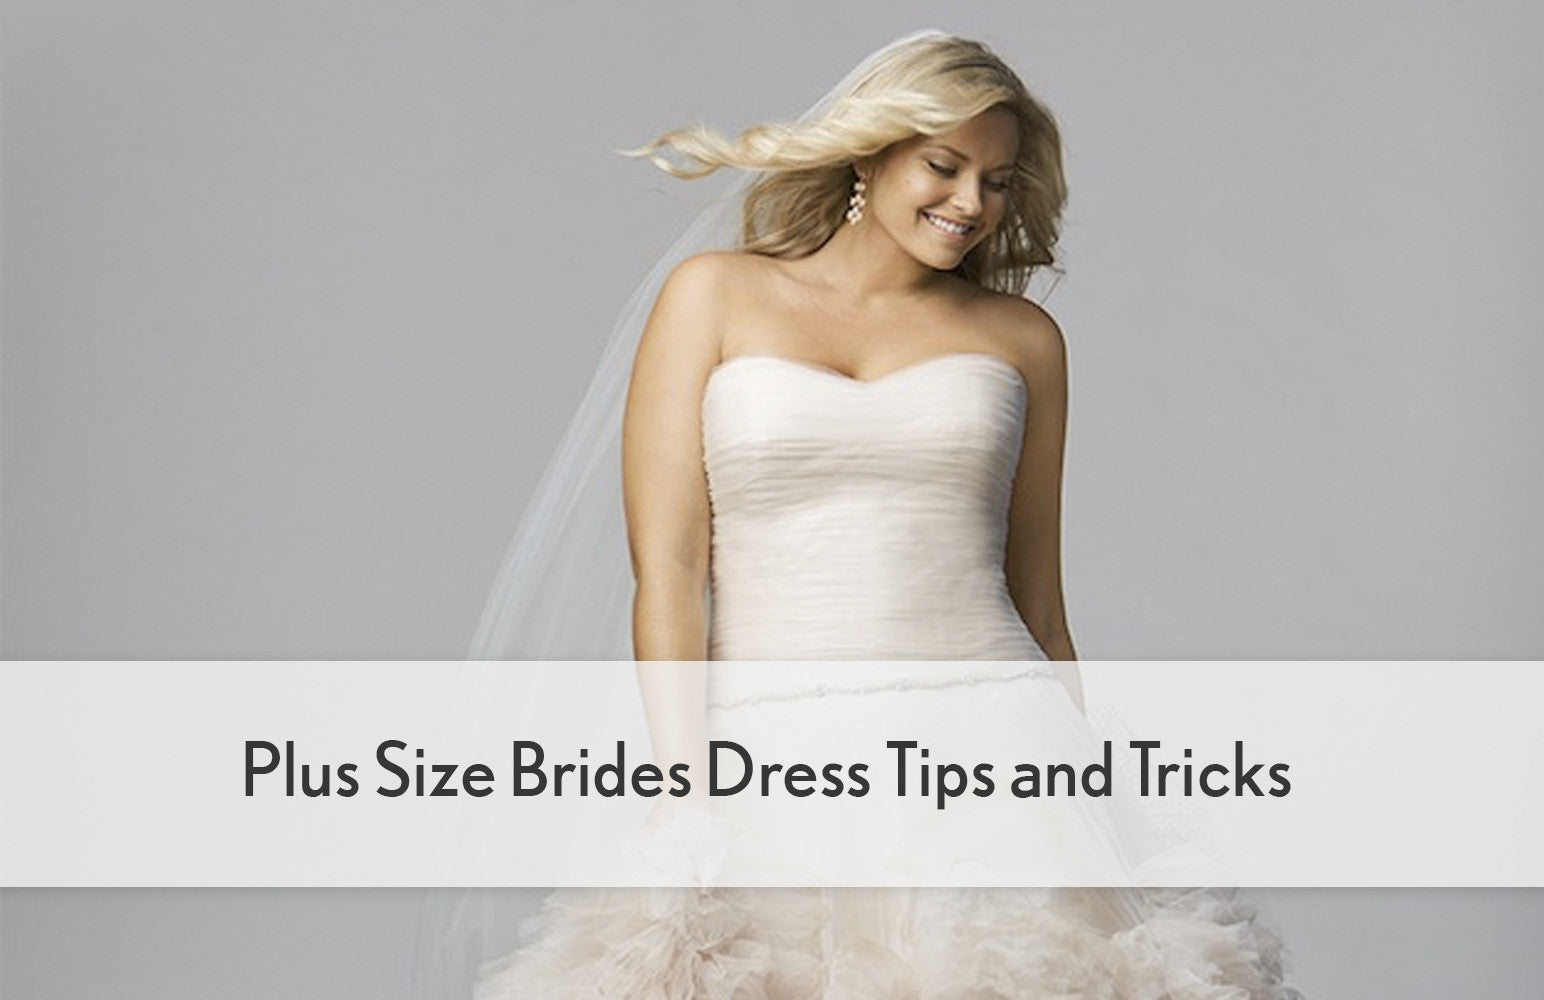 Plus Size Brides Dress Tips and Tricks